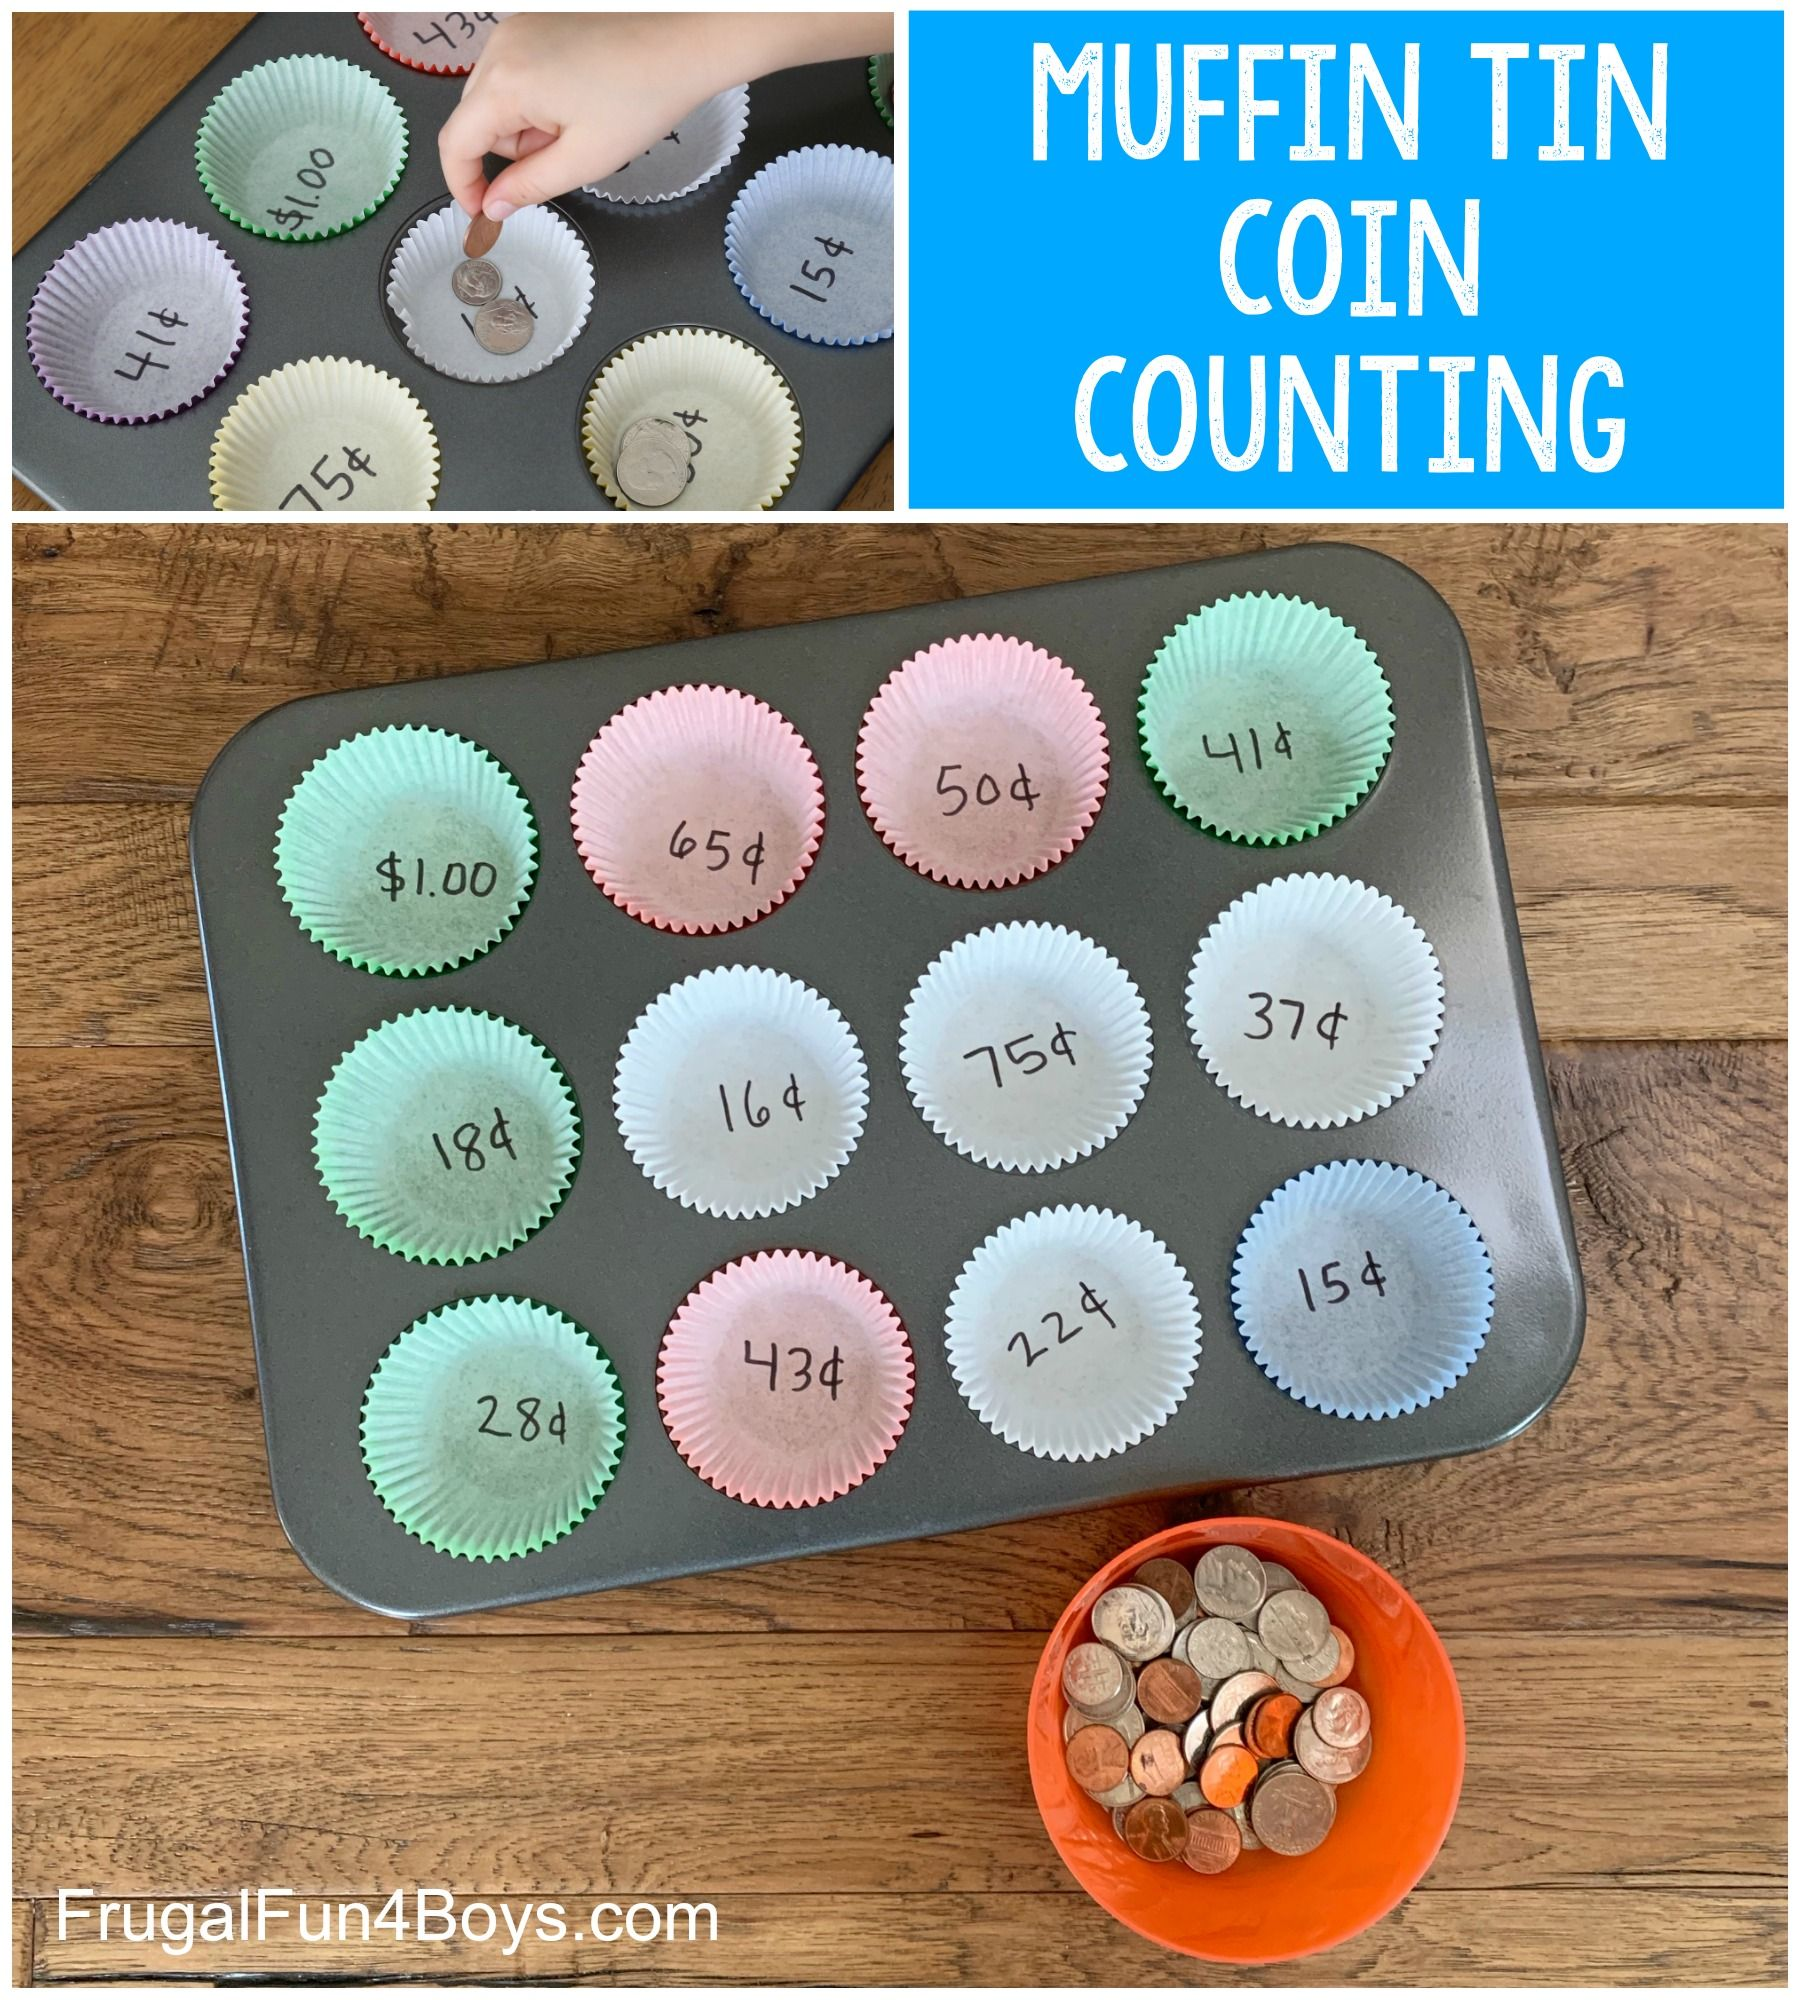 Muffin Tin Coin Counting Activity